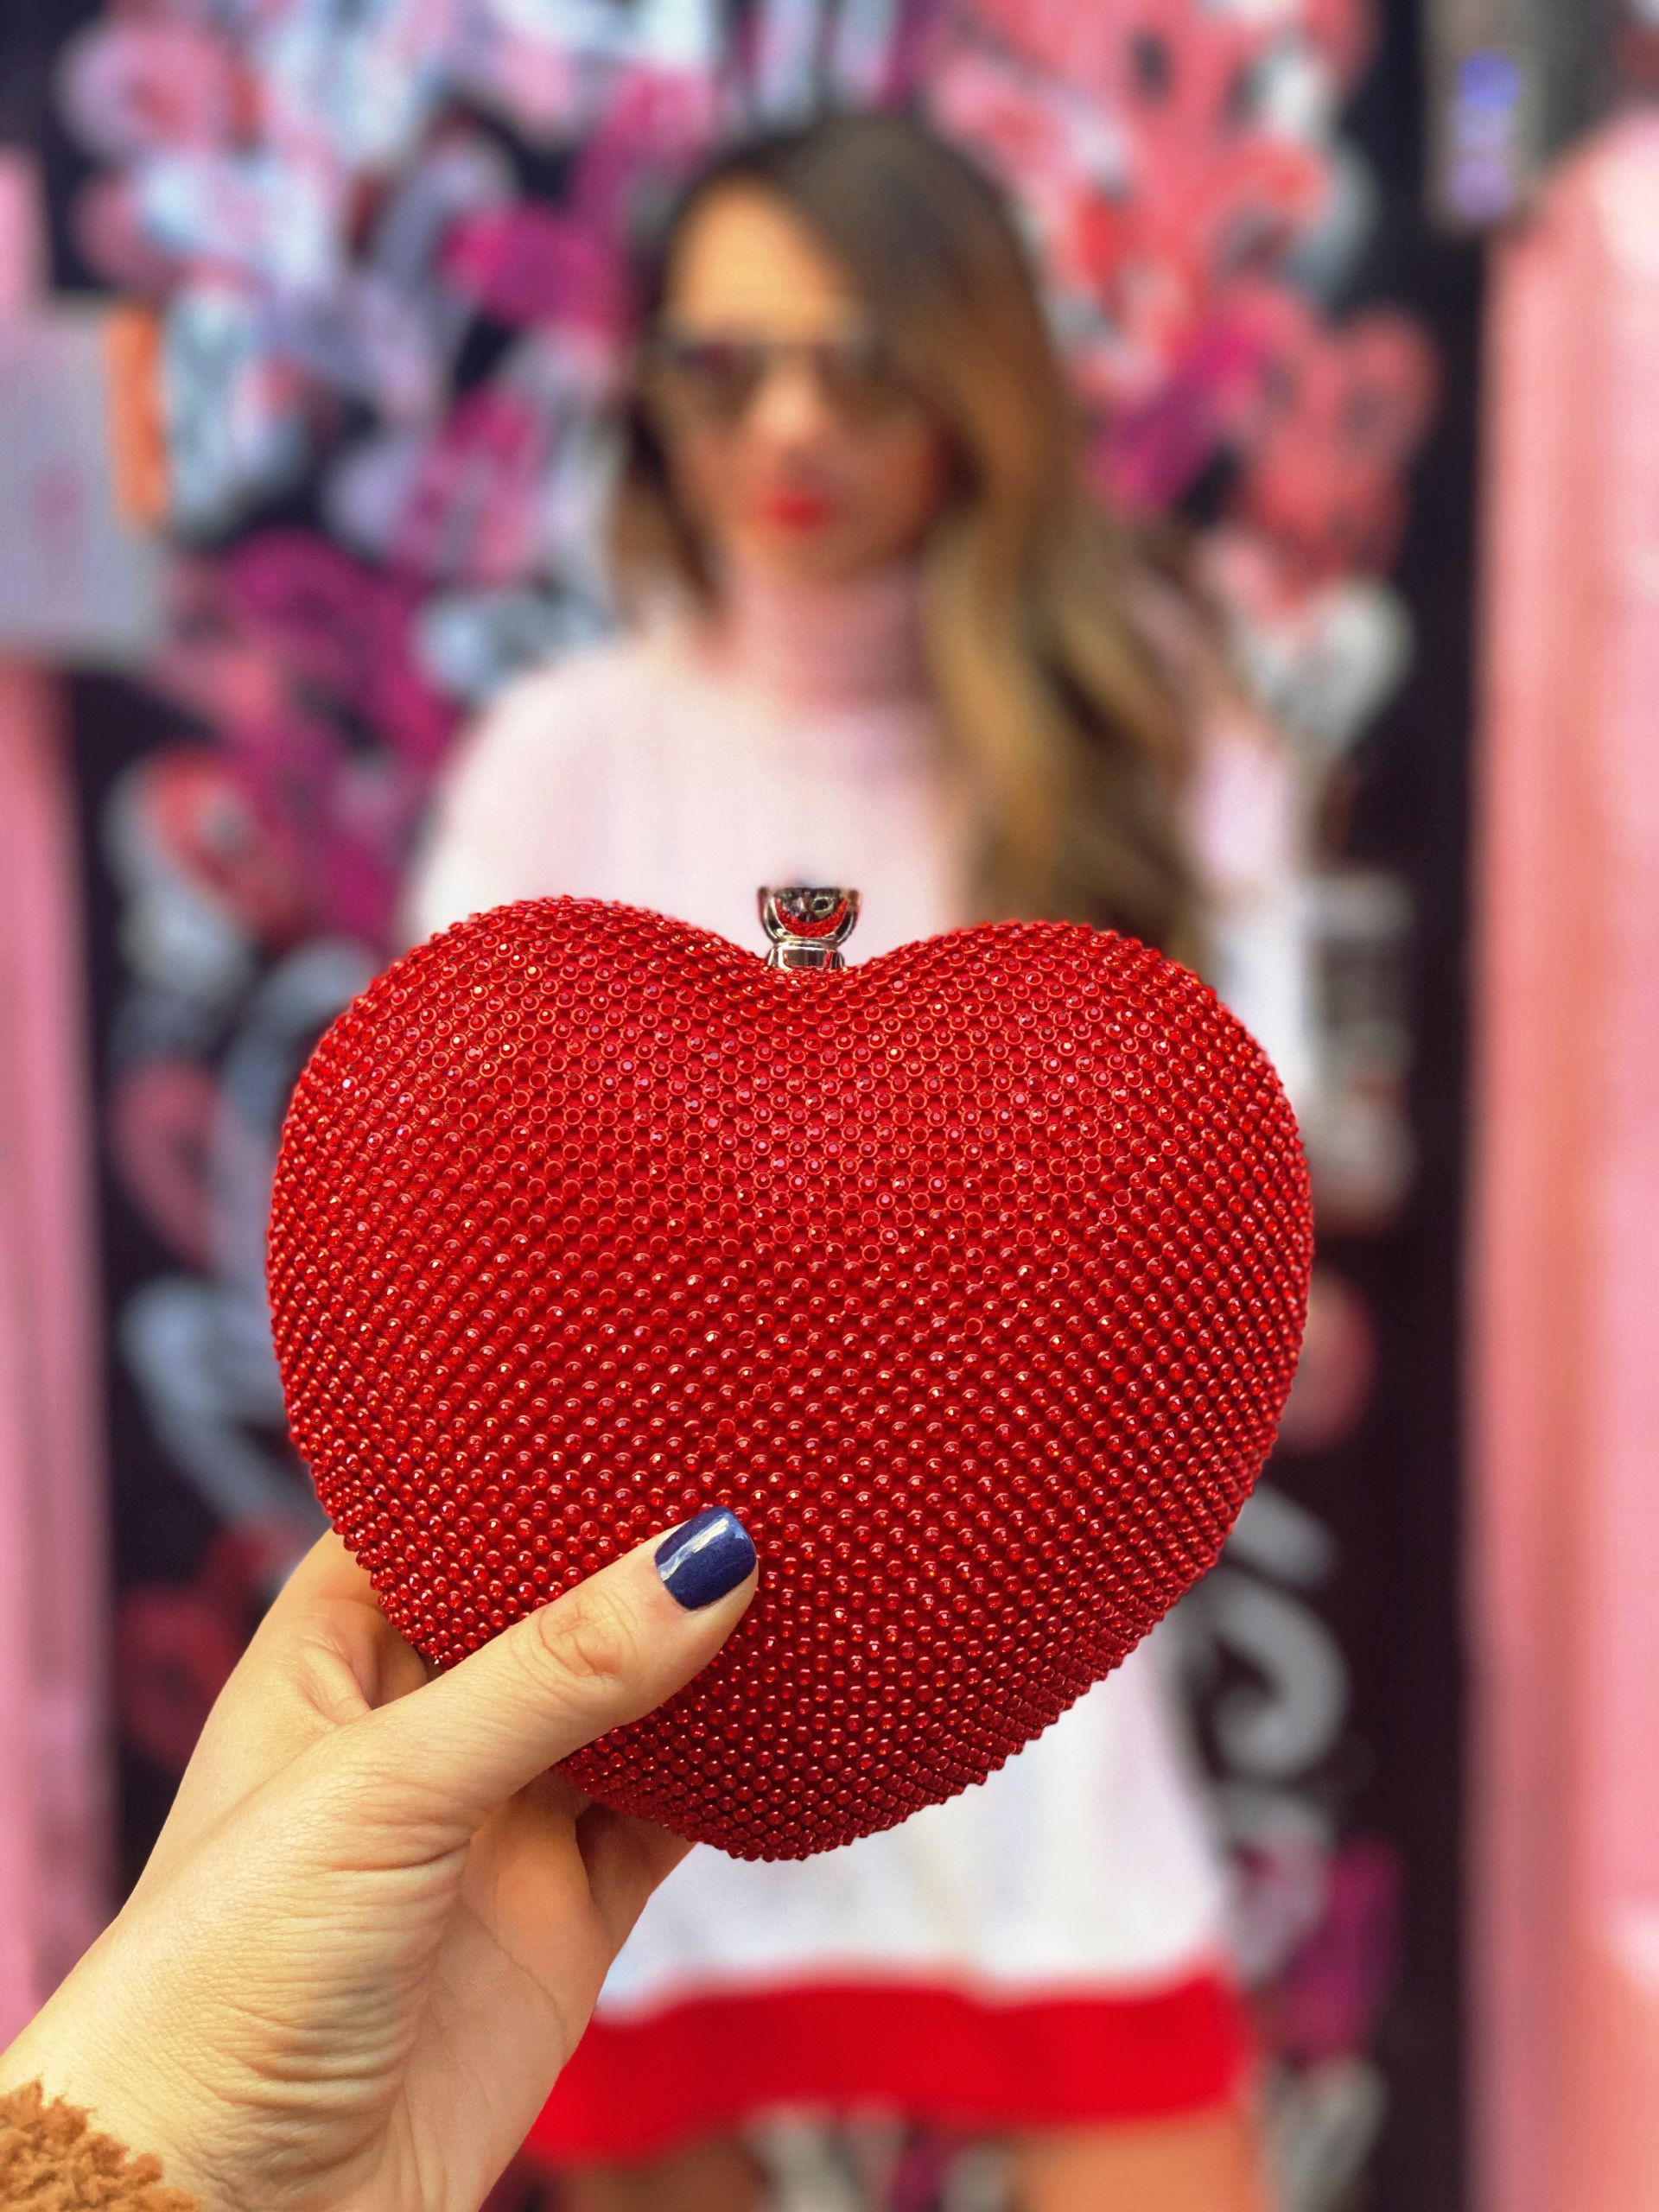 what to wear for Valentine's Day, Valentine's Day Inspired style, Valentine's Day outfit ideas, Vday outfits, Vday outfit ideas, Vday dresses, Vday style, Galentine's Day Style, Galentin'es day outfit ideas, what to wear for date night, date night style, valentine's day outfits for women, women's fashion, style blogger, fashion blogger, street style, how to style white boots, white boots outfit ideas, sweater dress outfit ideas, how to style a sweater dress, colorblocked sweater dress, pink and red dress style, Akira LOVE ME RHINESTONE BAG, Schutz Maryana Boot, Lovers + Friends Kane Sweater Dress in Pink & Red